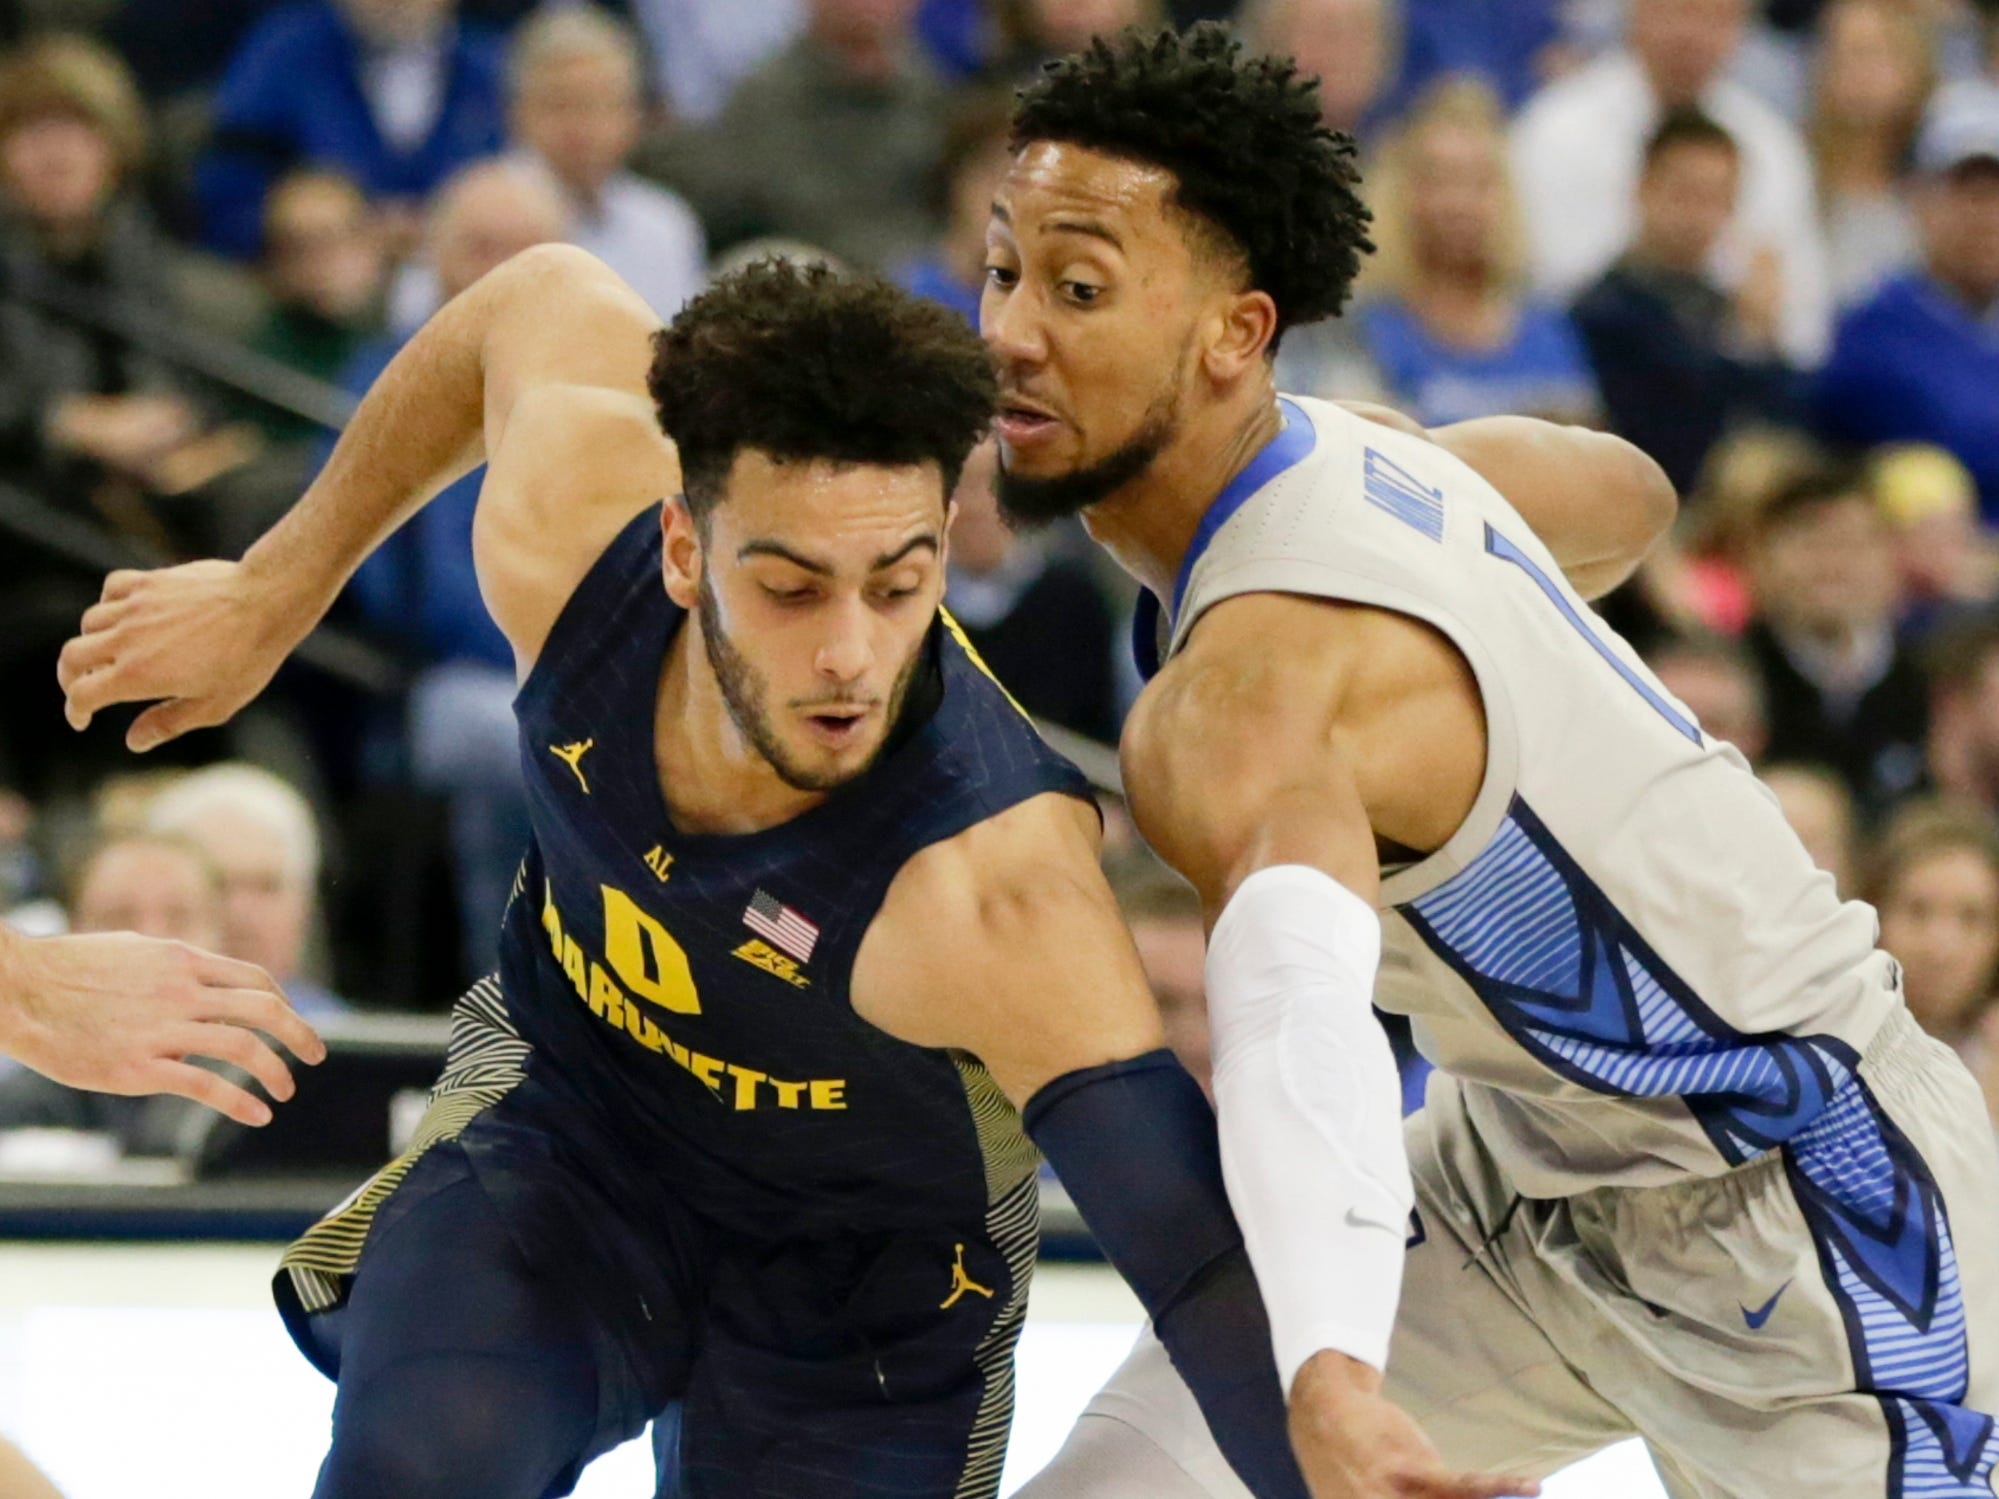 Marquette's Markus Howard tries to drive past Creighton's DavionMintz during the first half Wednesday night.